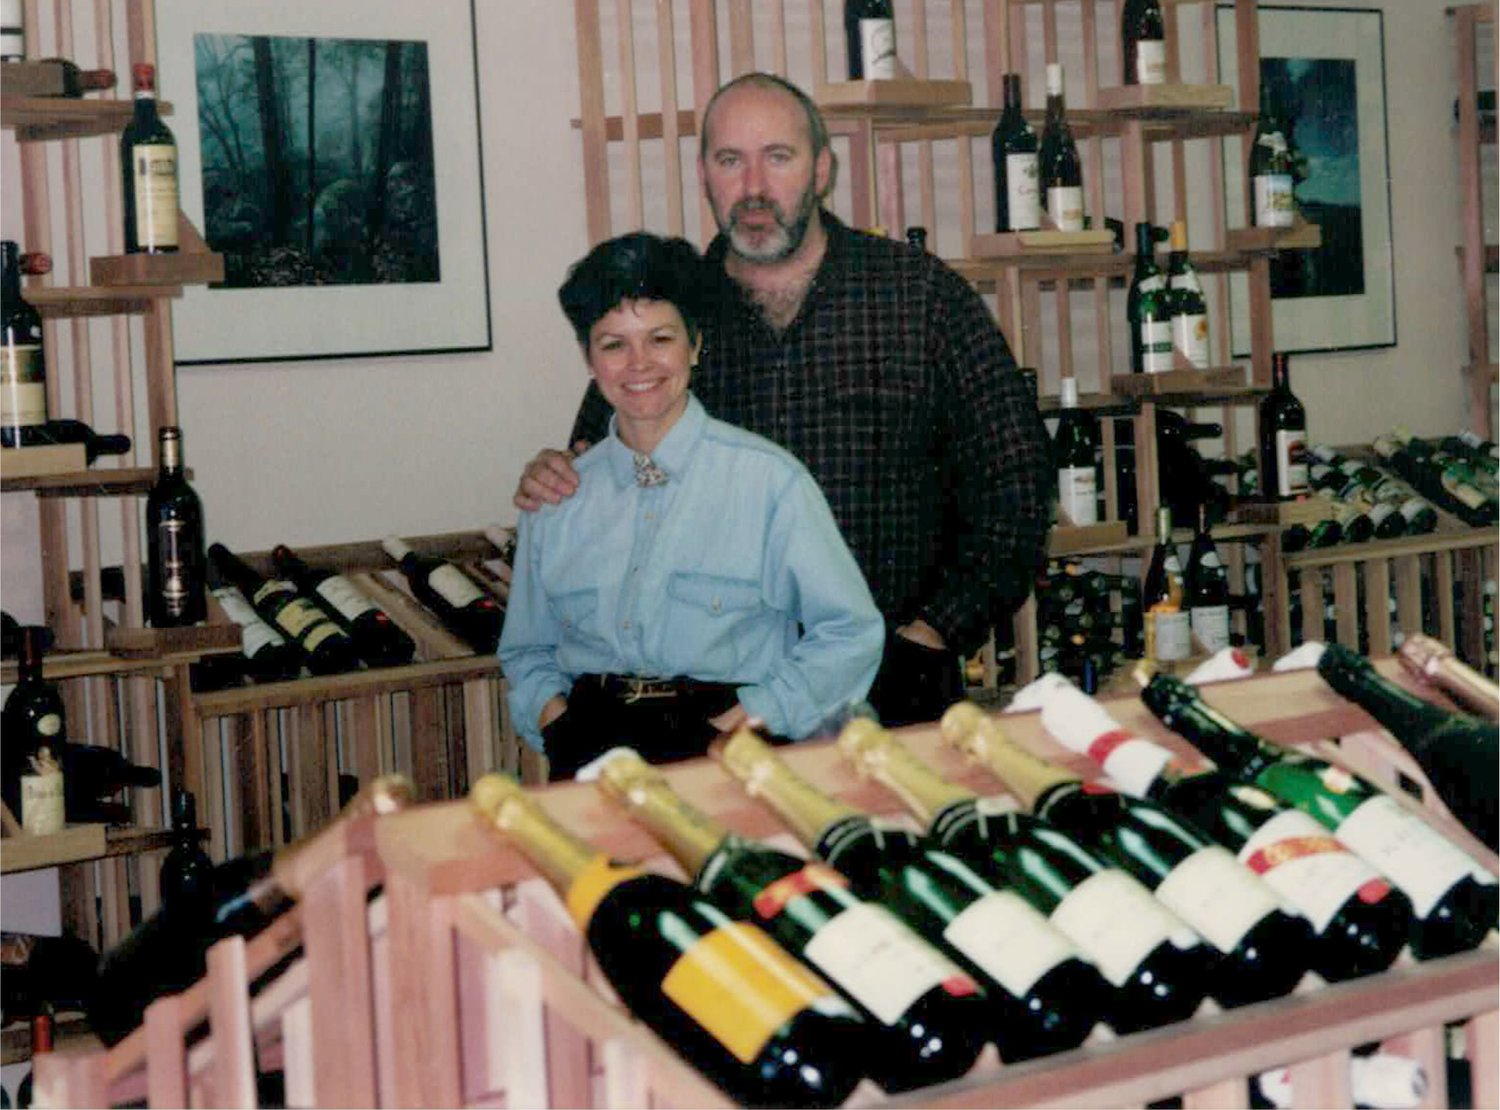 Vintage Tim and Laurel, pictured here on Stone Ridge Wine and Spirits opening day!